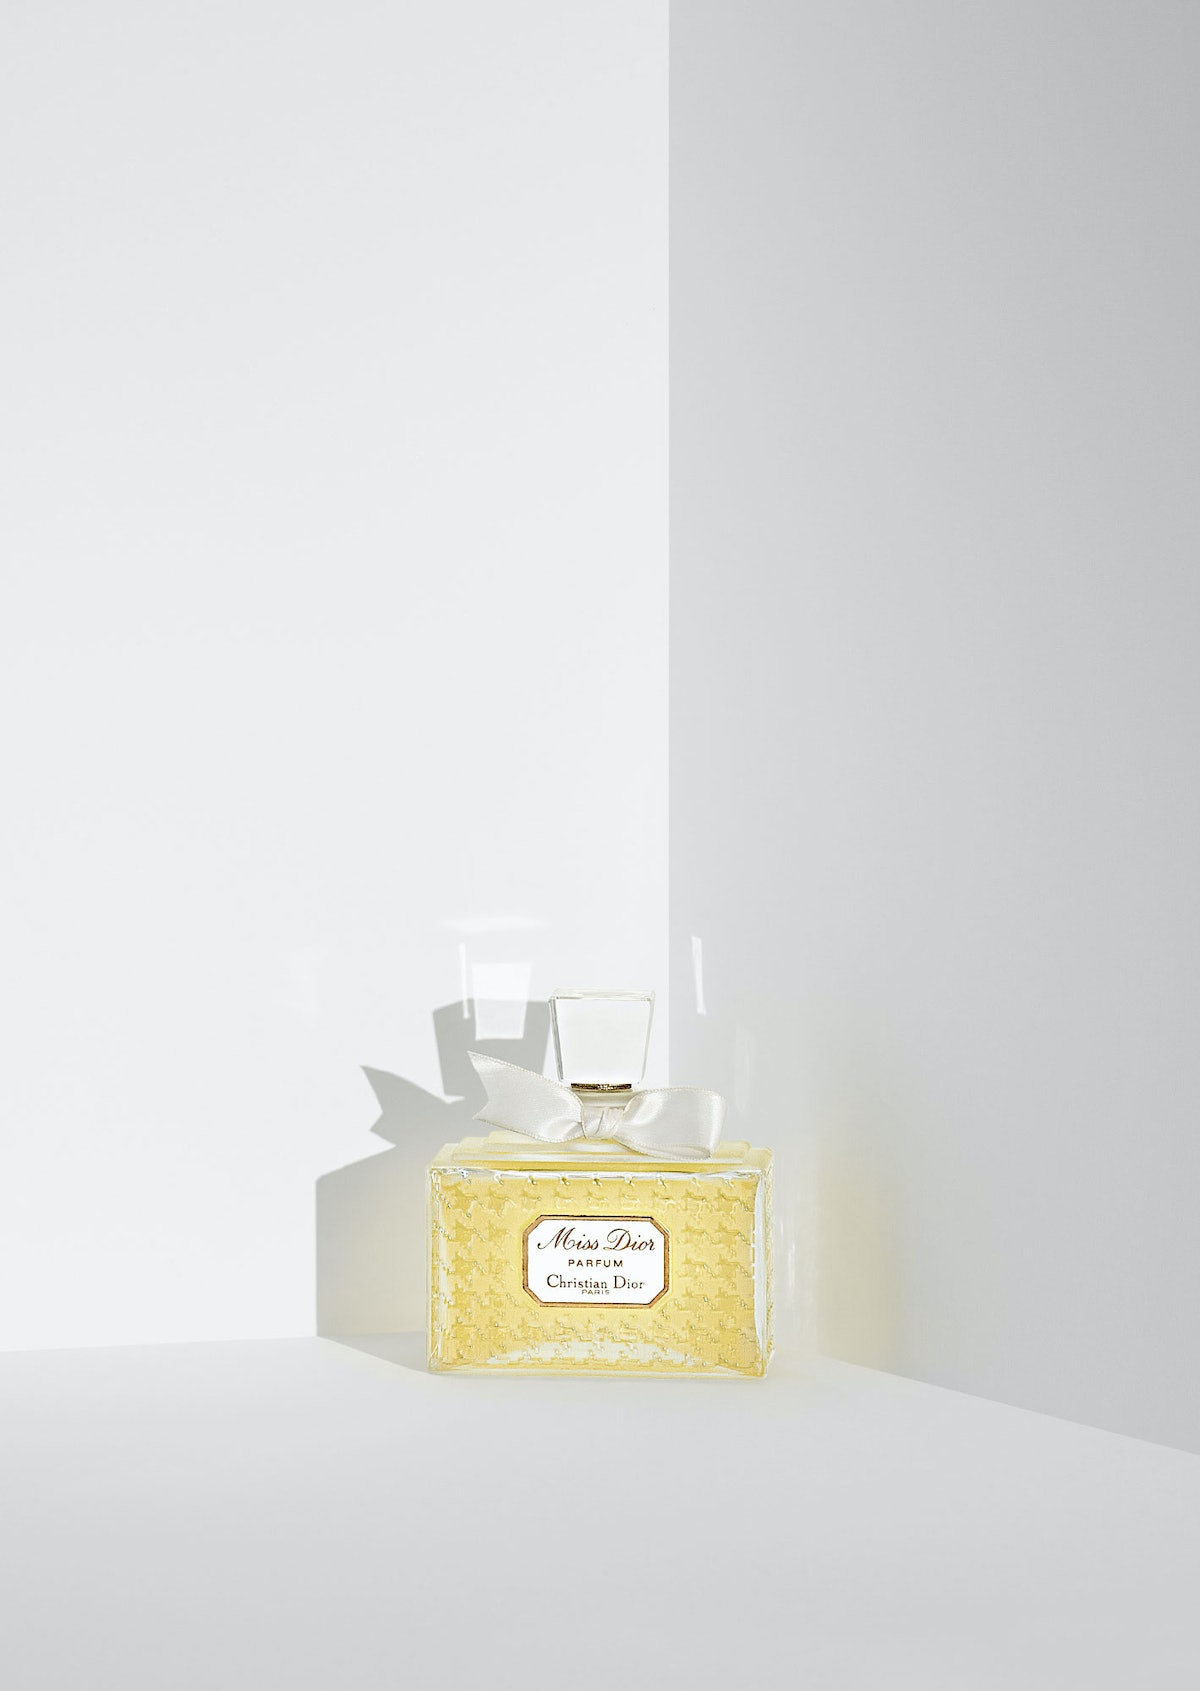 Christian Dior's first fragrance, Miss Dior